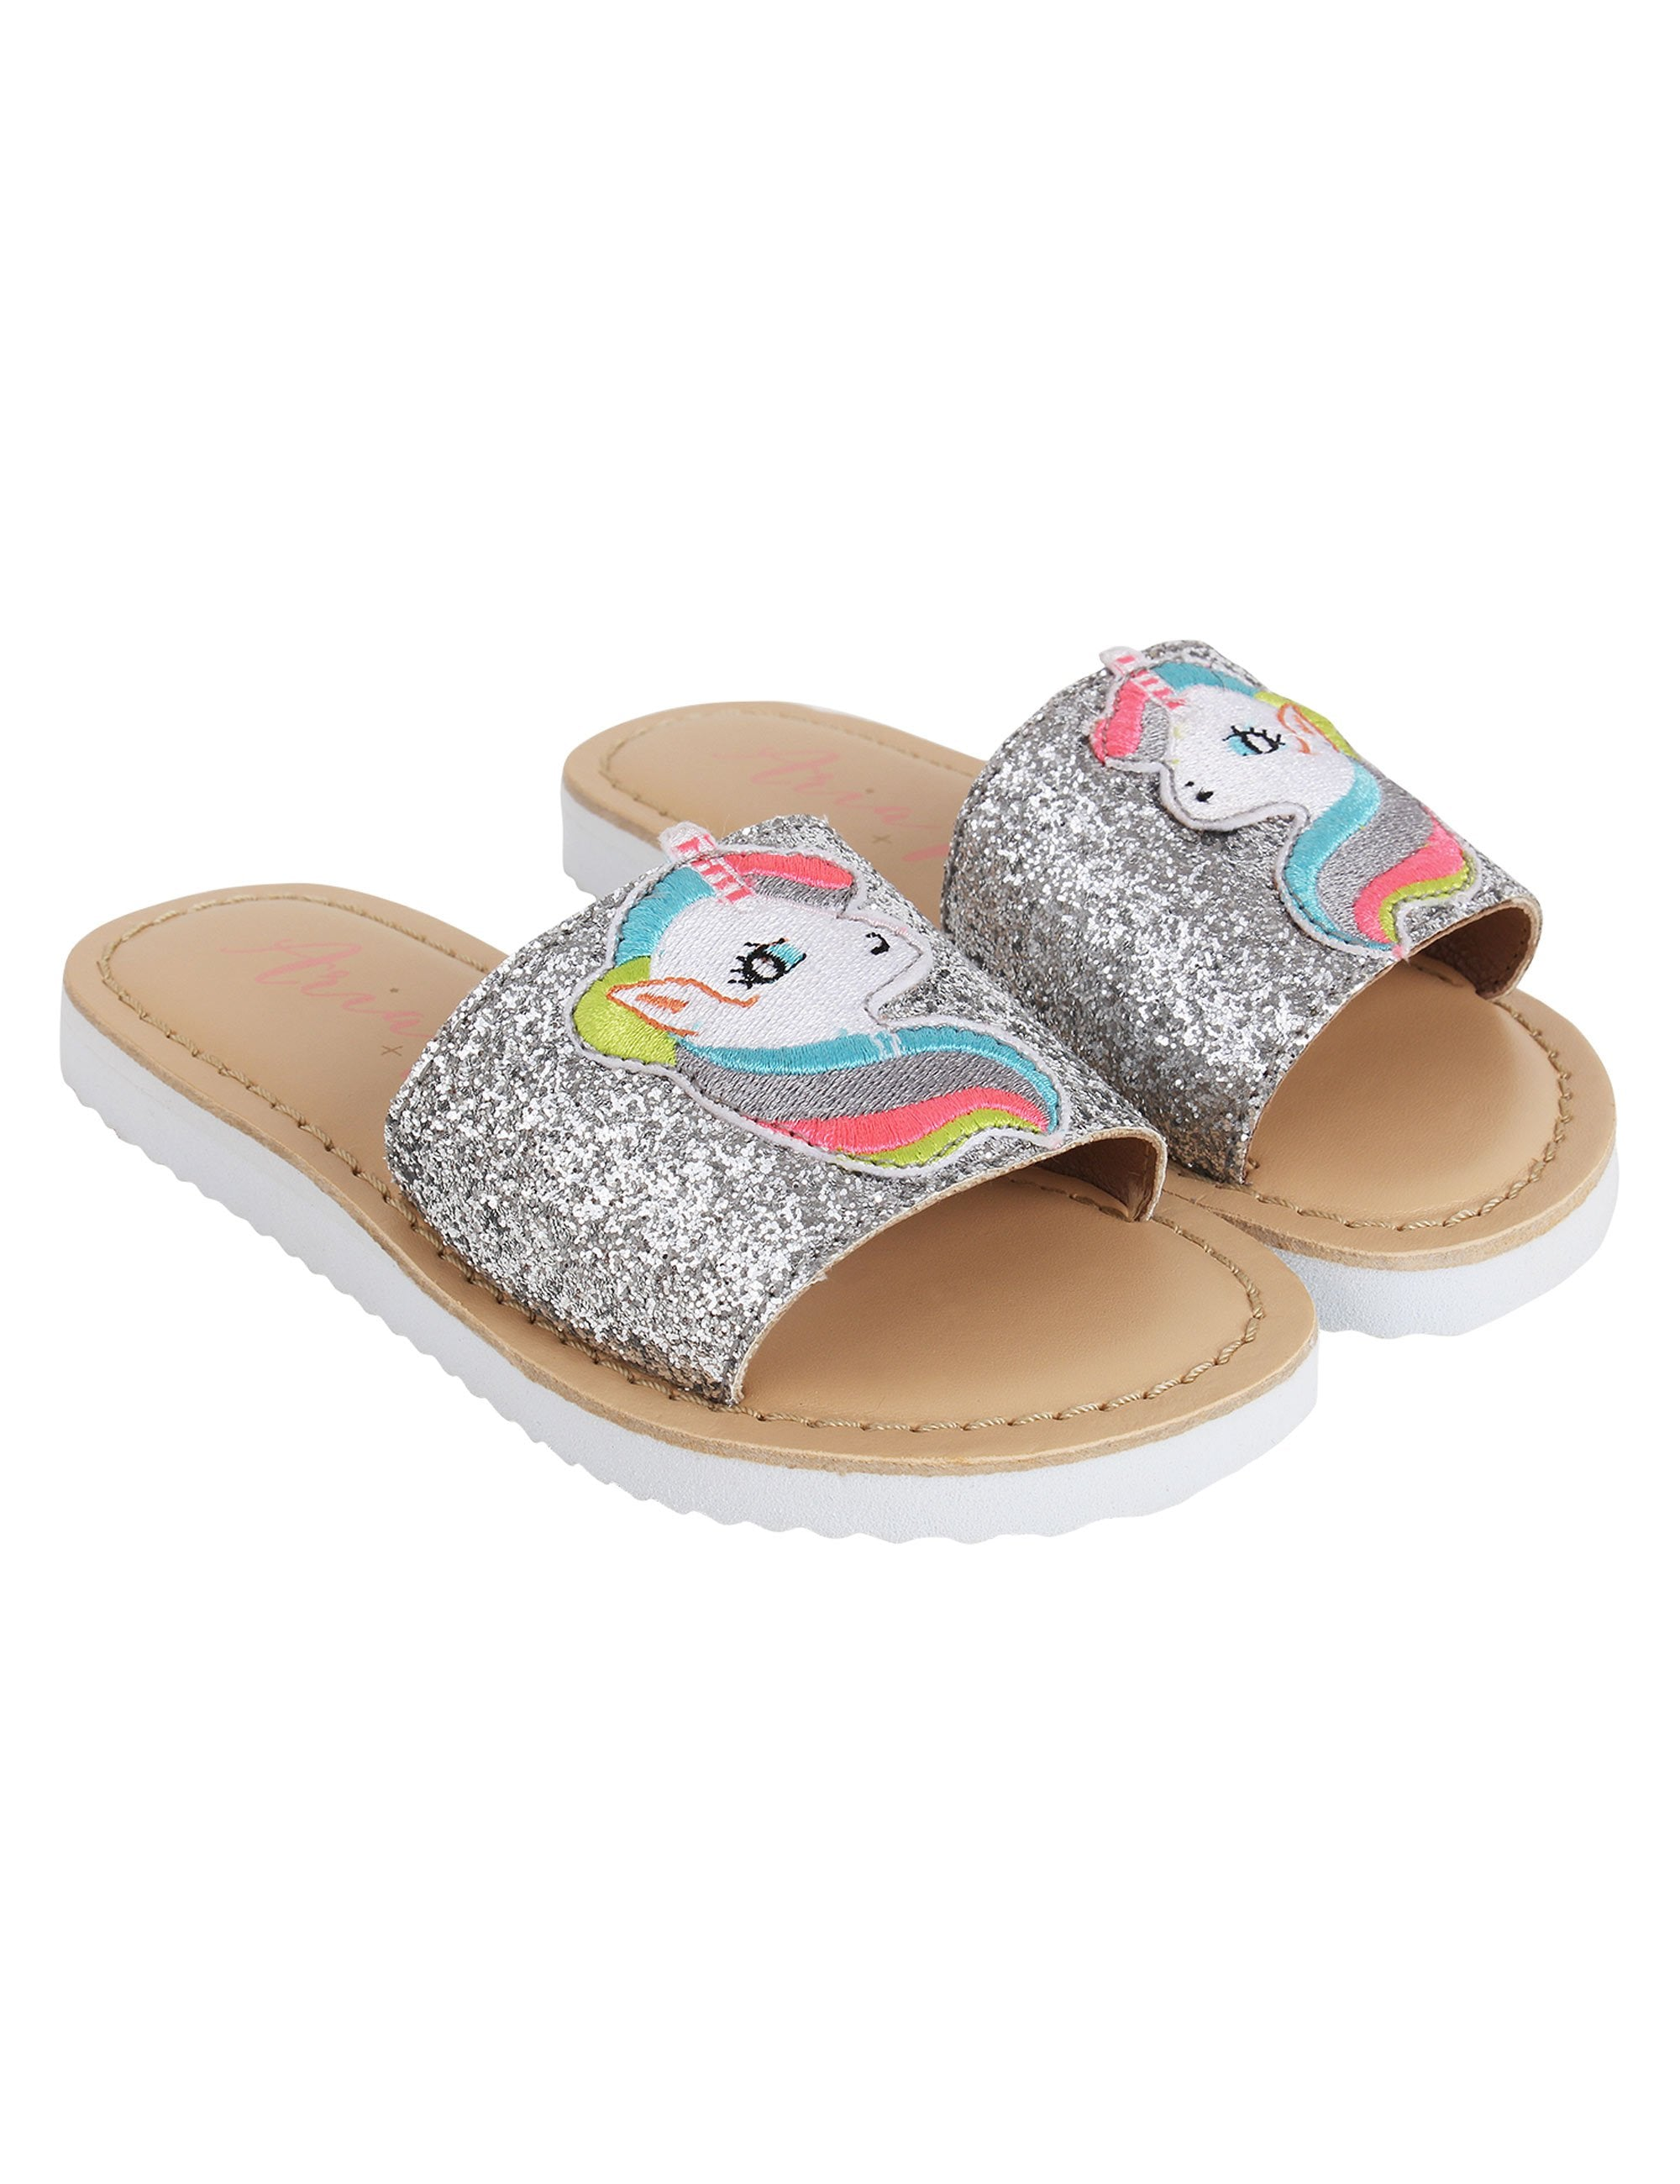 Silver Unicorn Flats for Girls